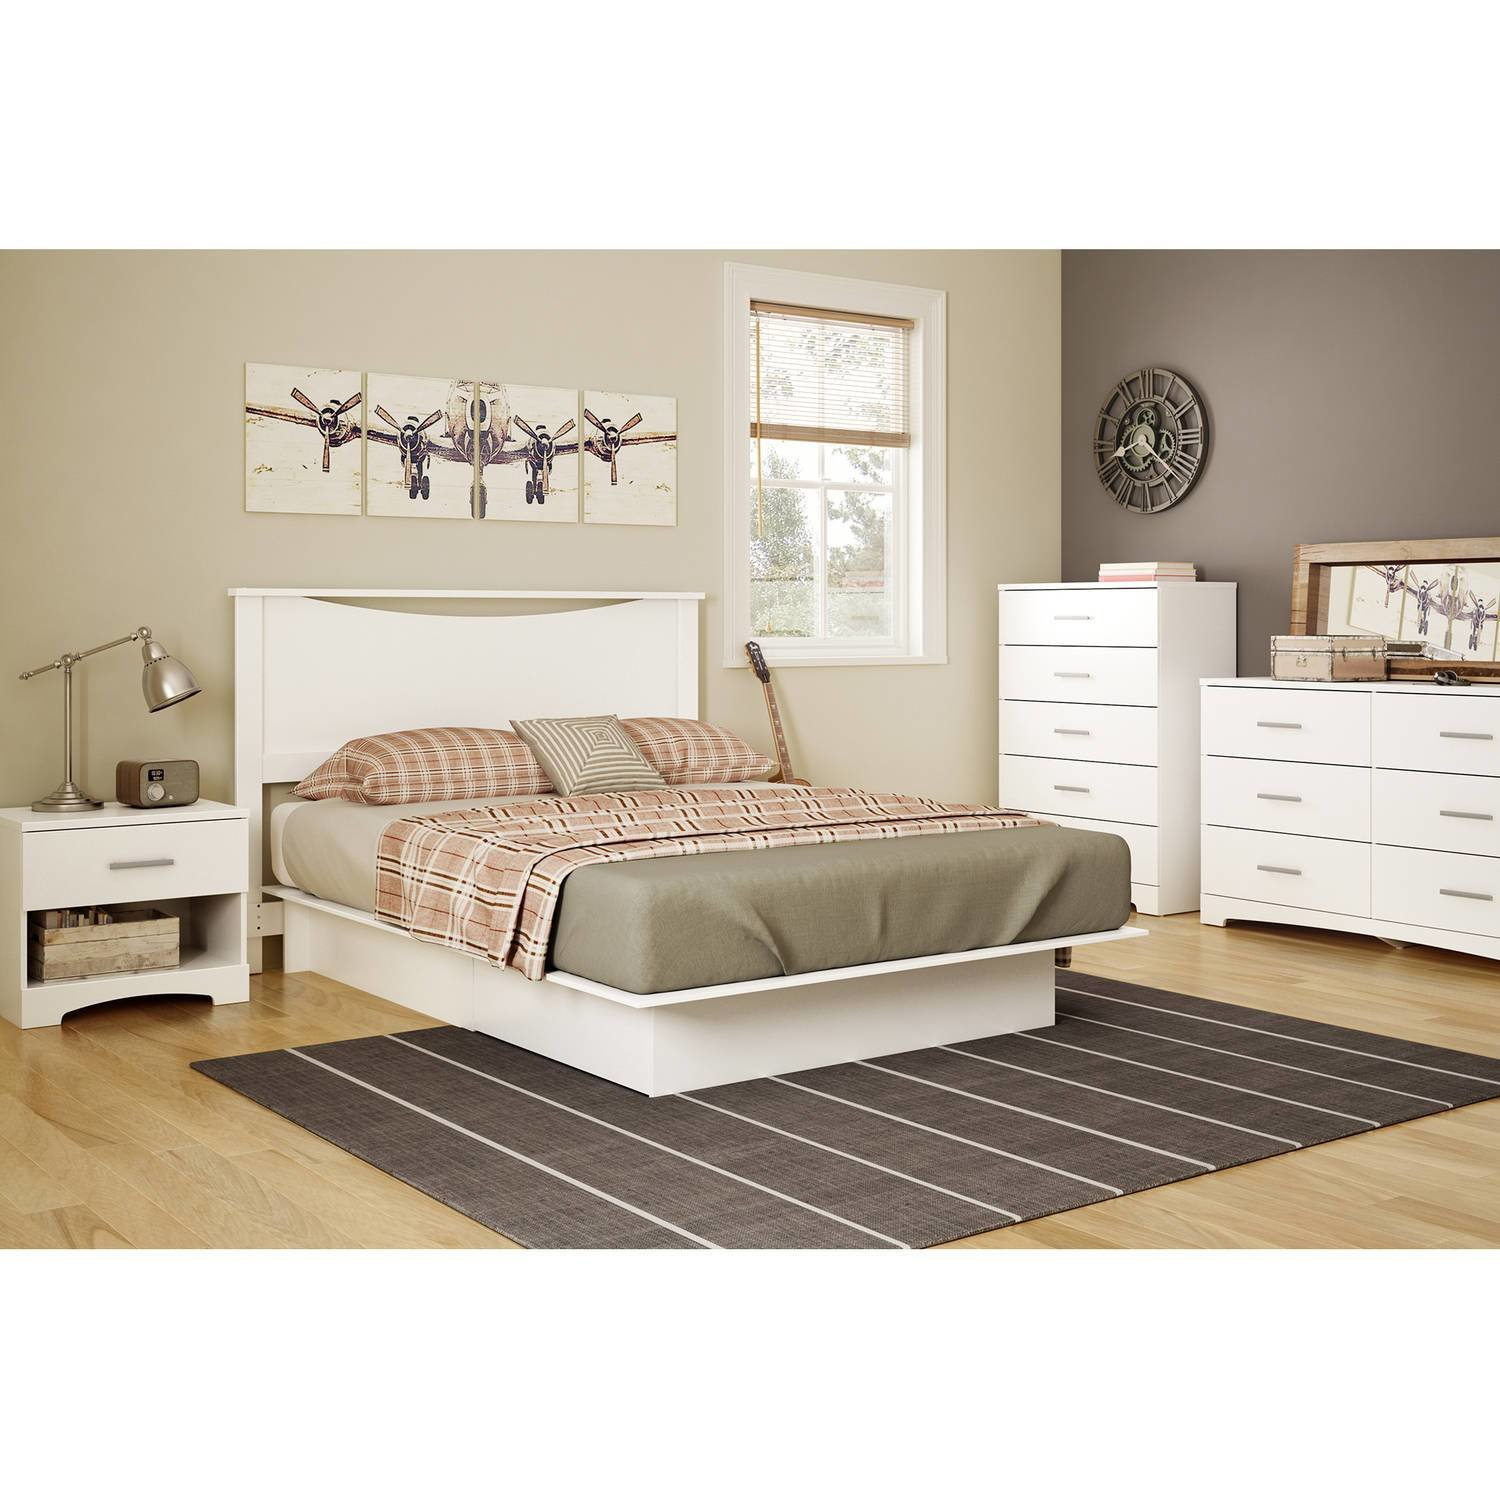 Best White Platform Bed Full Queen Size With Drawers Bedroom With Pictures